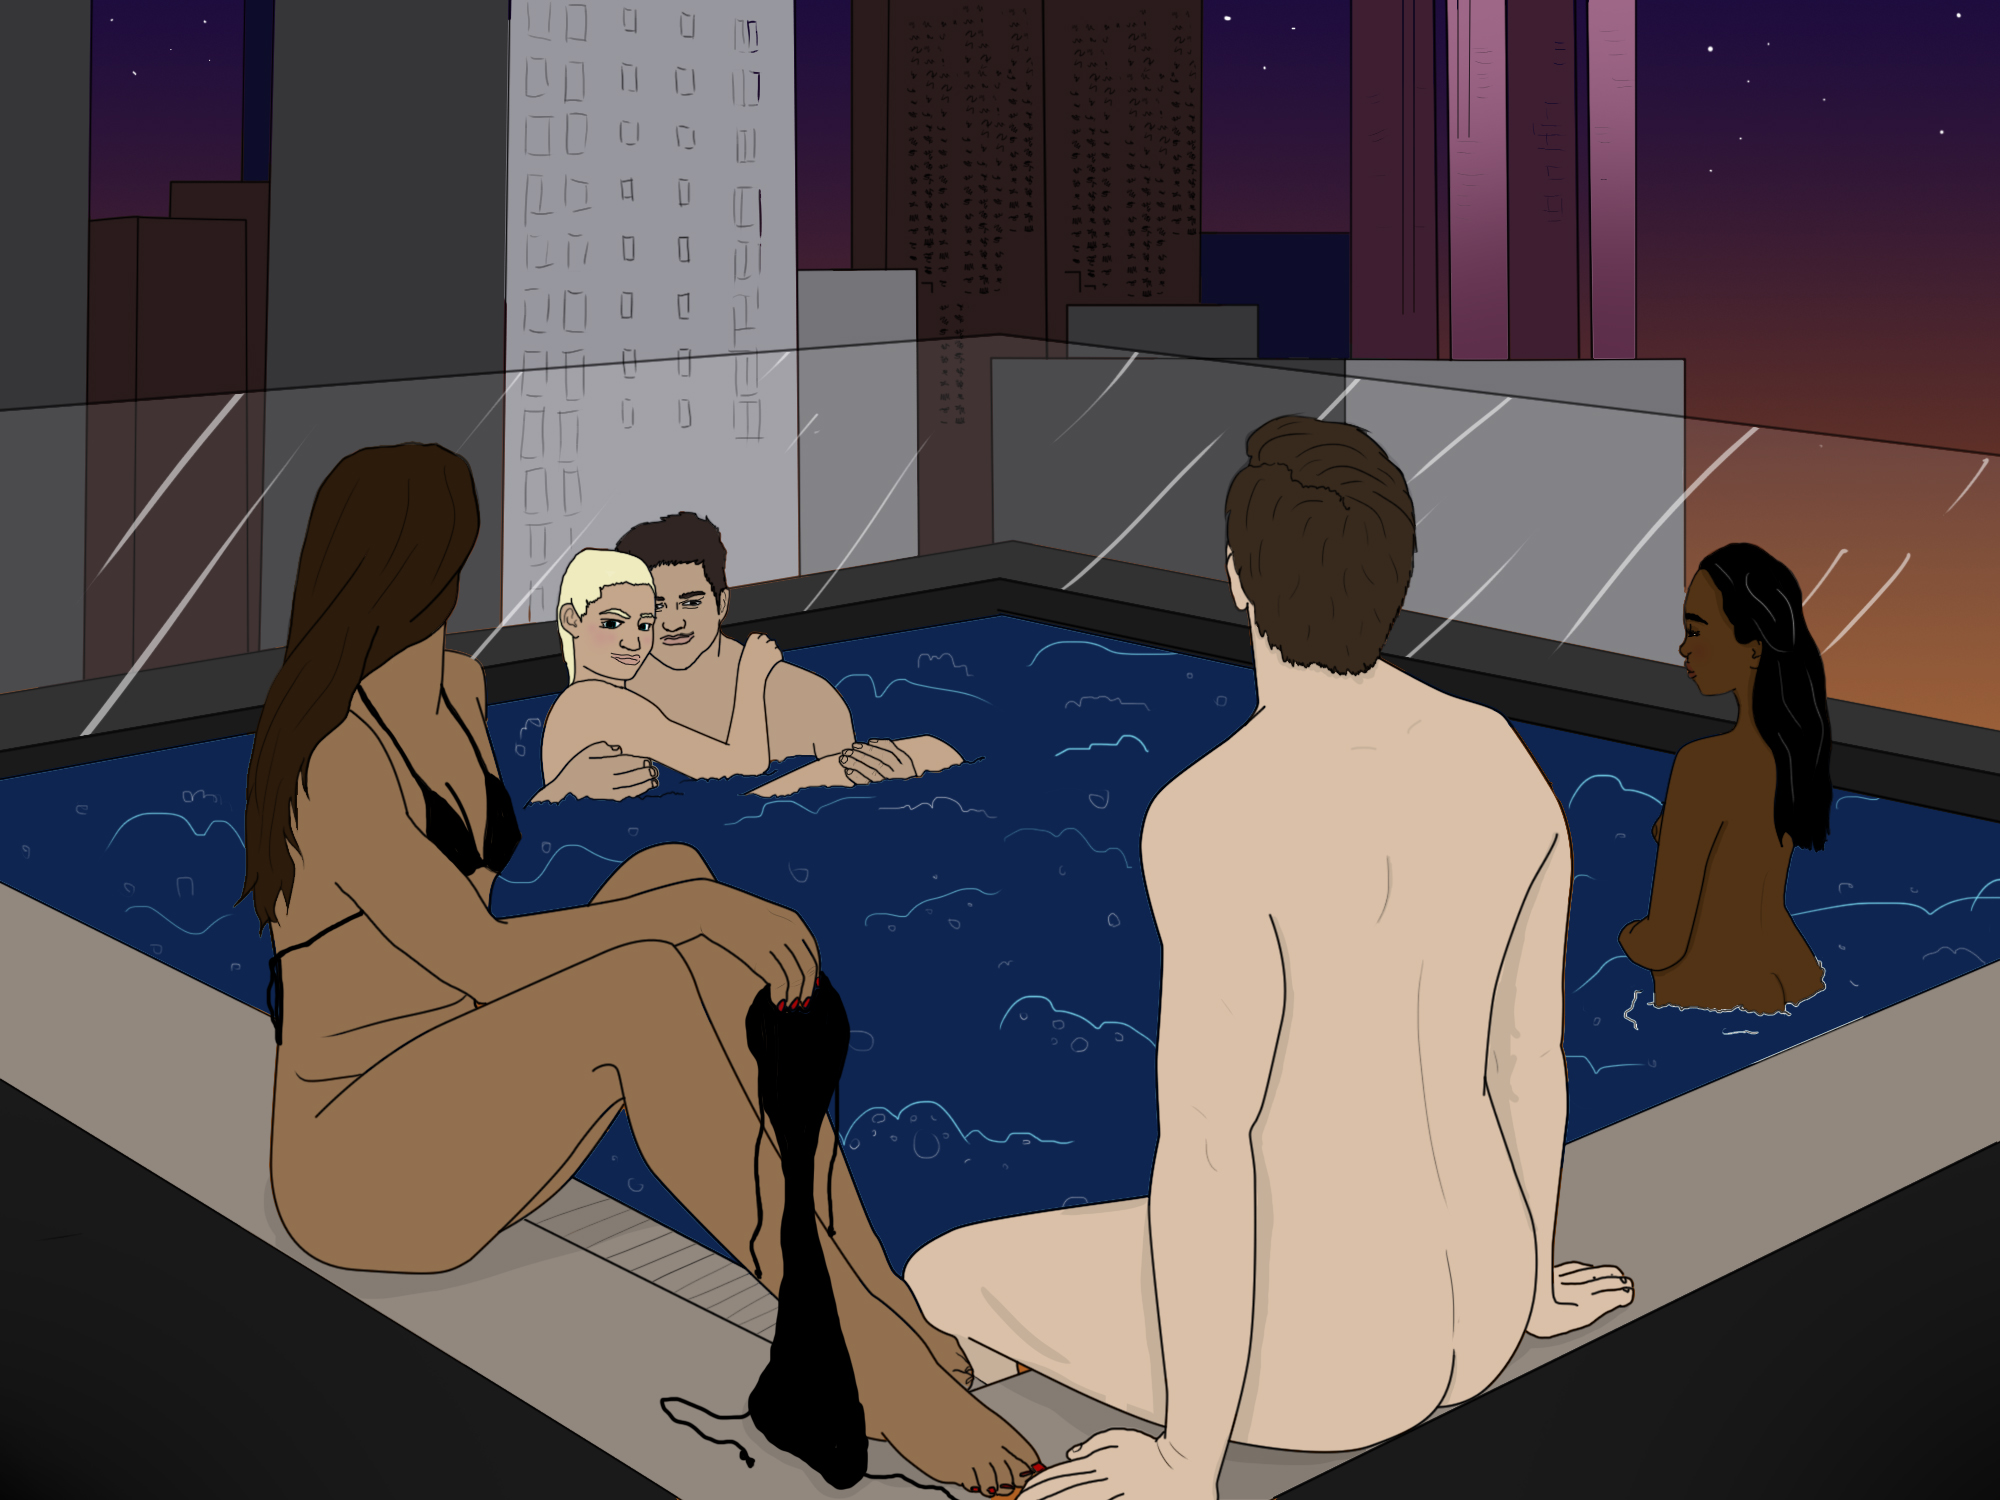 I went to a sensual supper club and ended up naked in a hot tub orgy